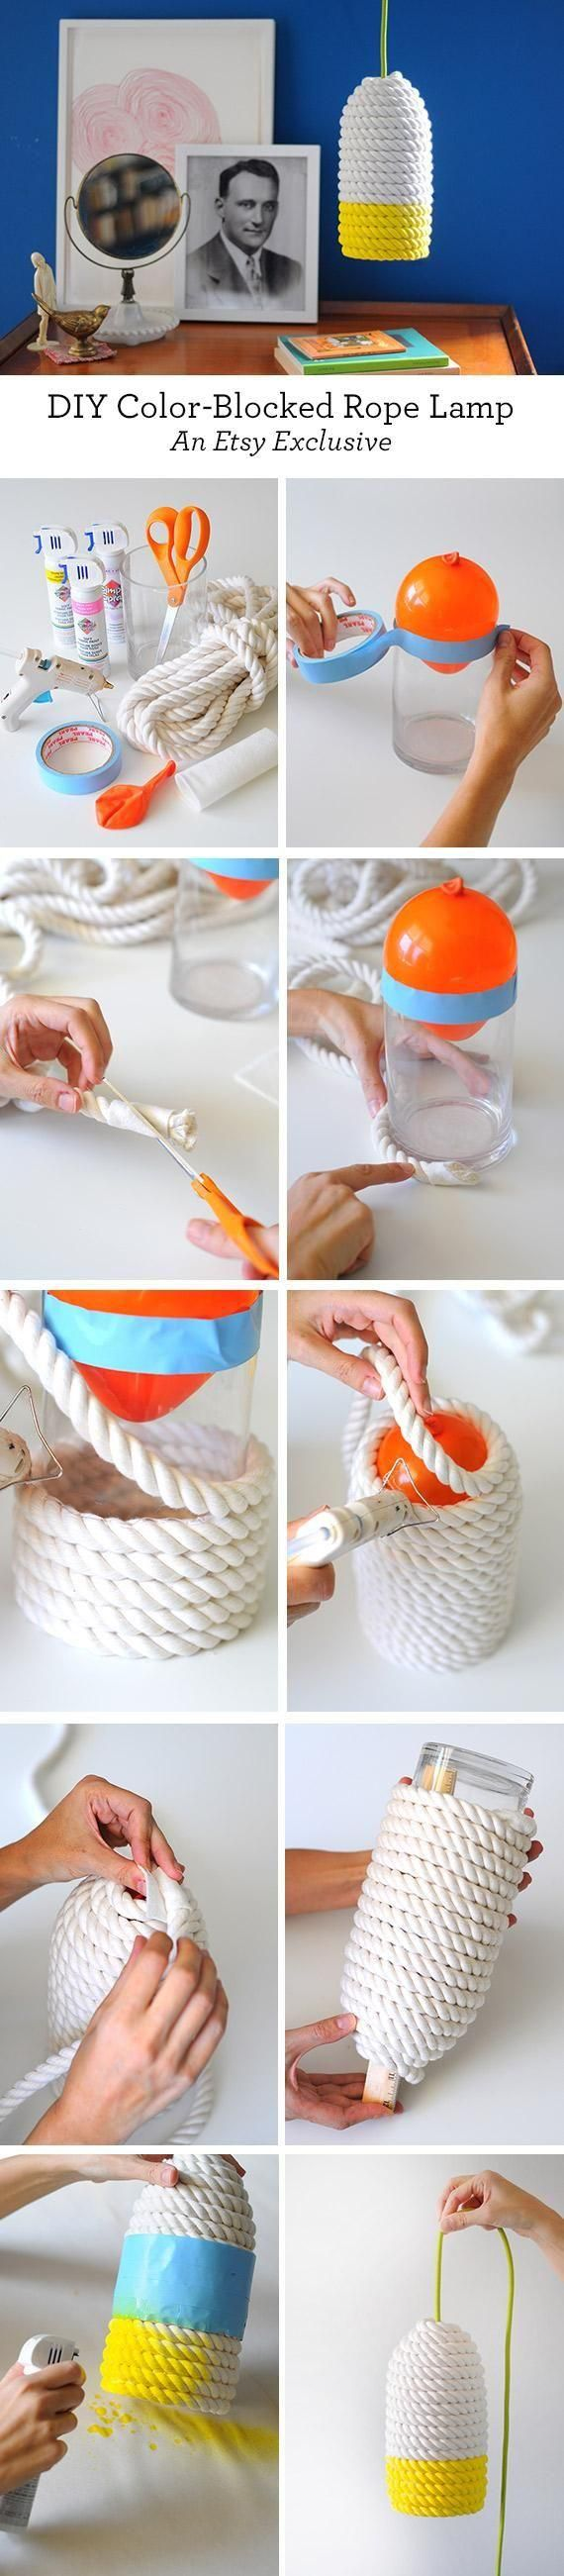 Make It: DIY Rope Lamp - Tutorial #diy #home